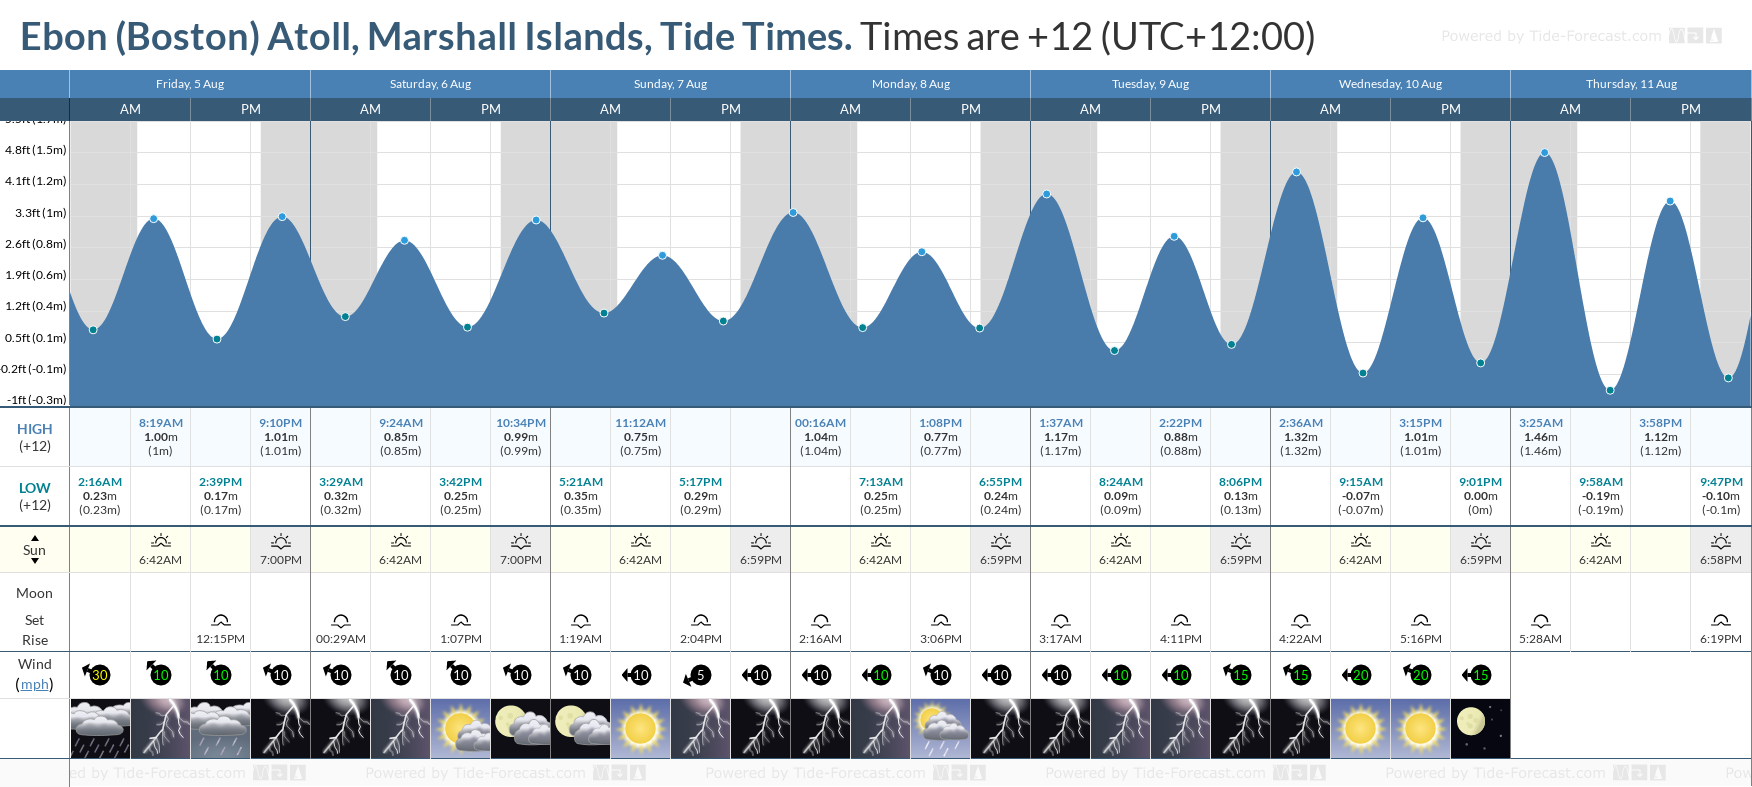 Ebon (Boston) Atoll, Marshall Islands Tide Chart including high and low tide tide times for the next 7 days